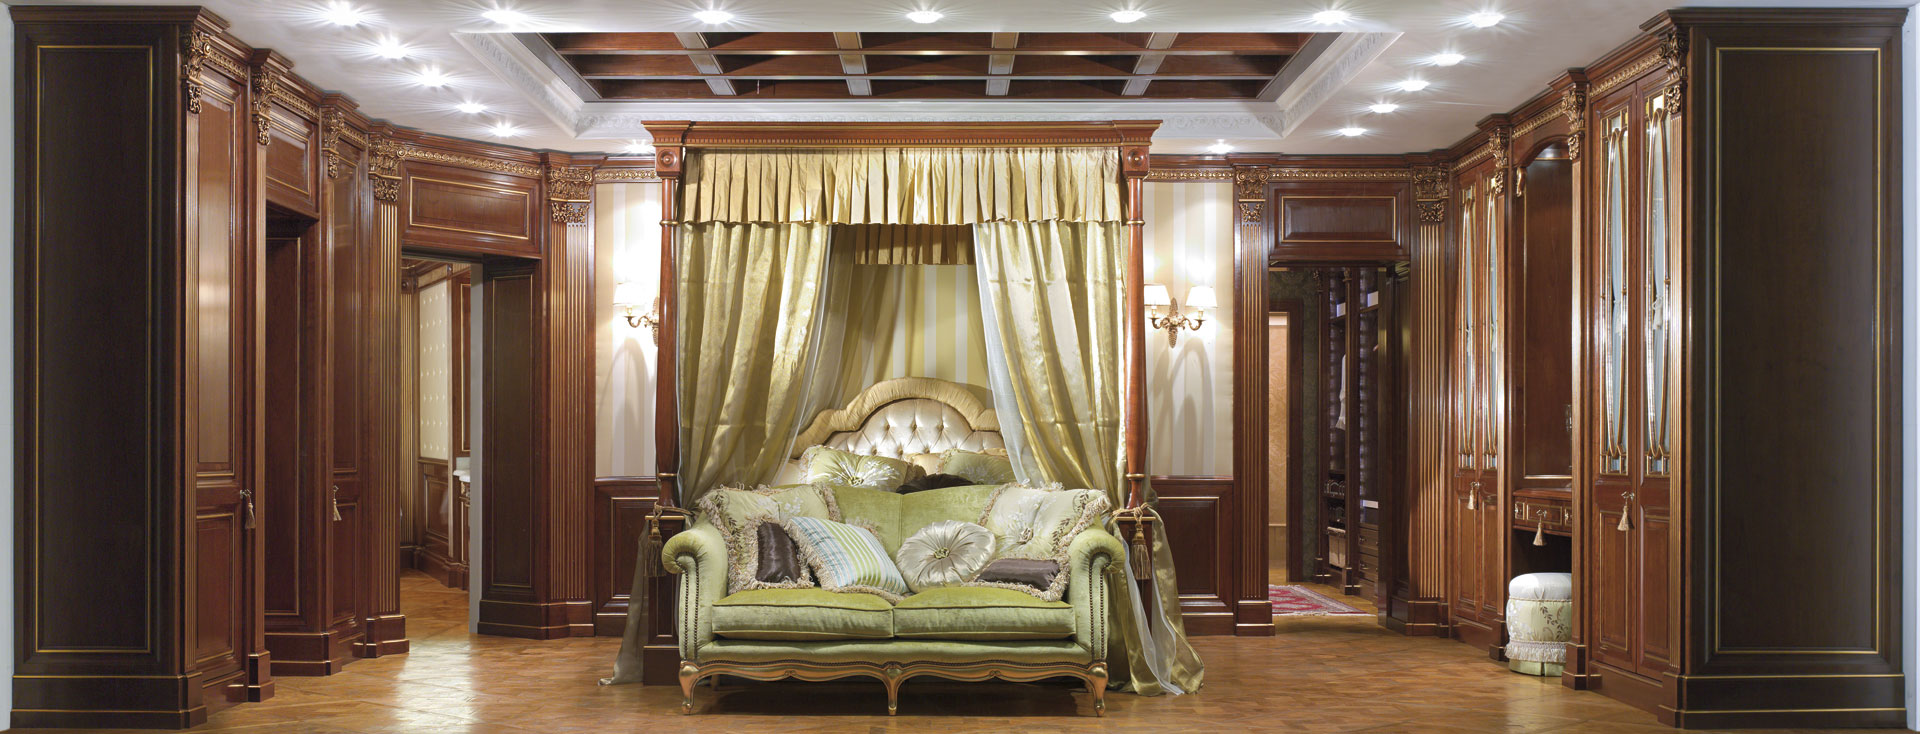 Prince Love: elegance and luxury in the bedroom